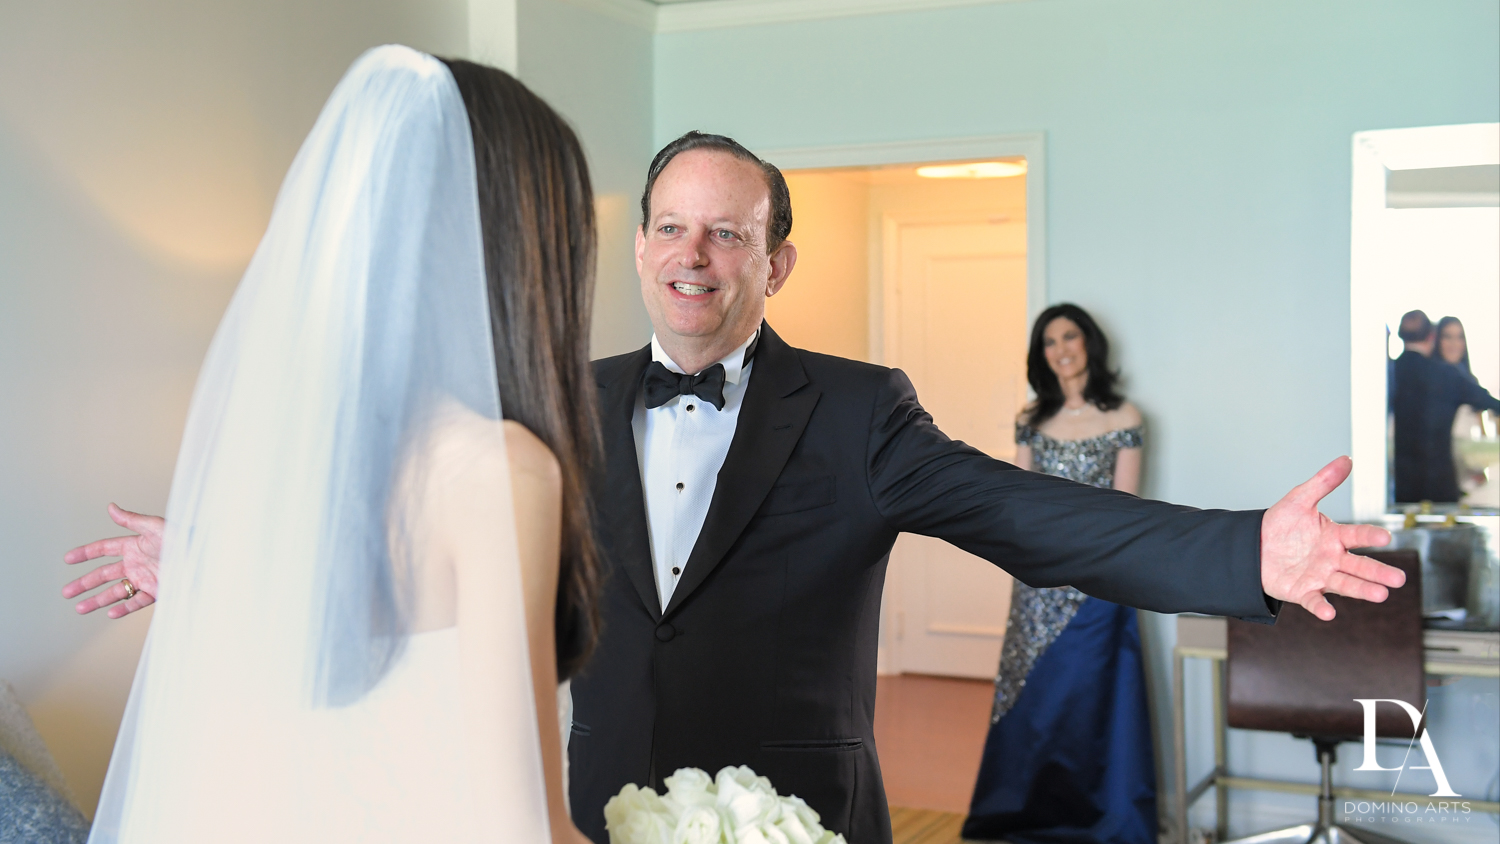 father of the bride at A Ritz Carlton Wedding in Key Biscayne by Domino Arts Photography